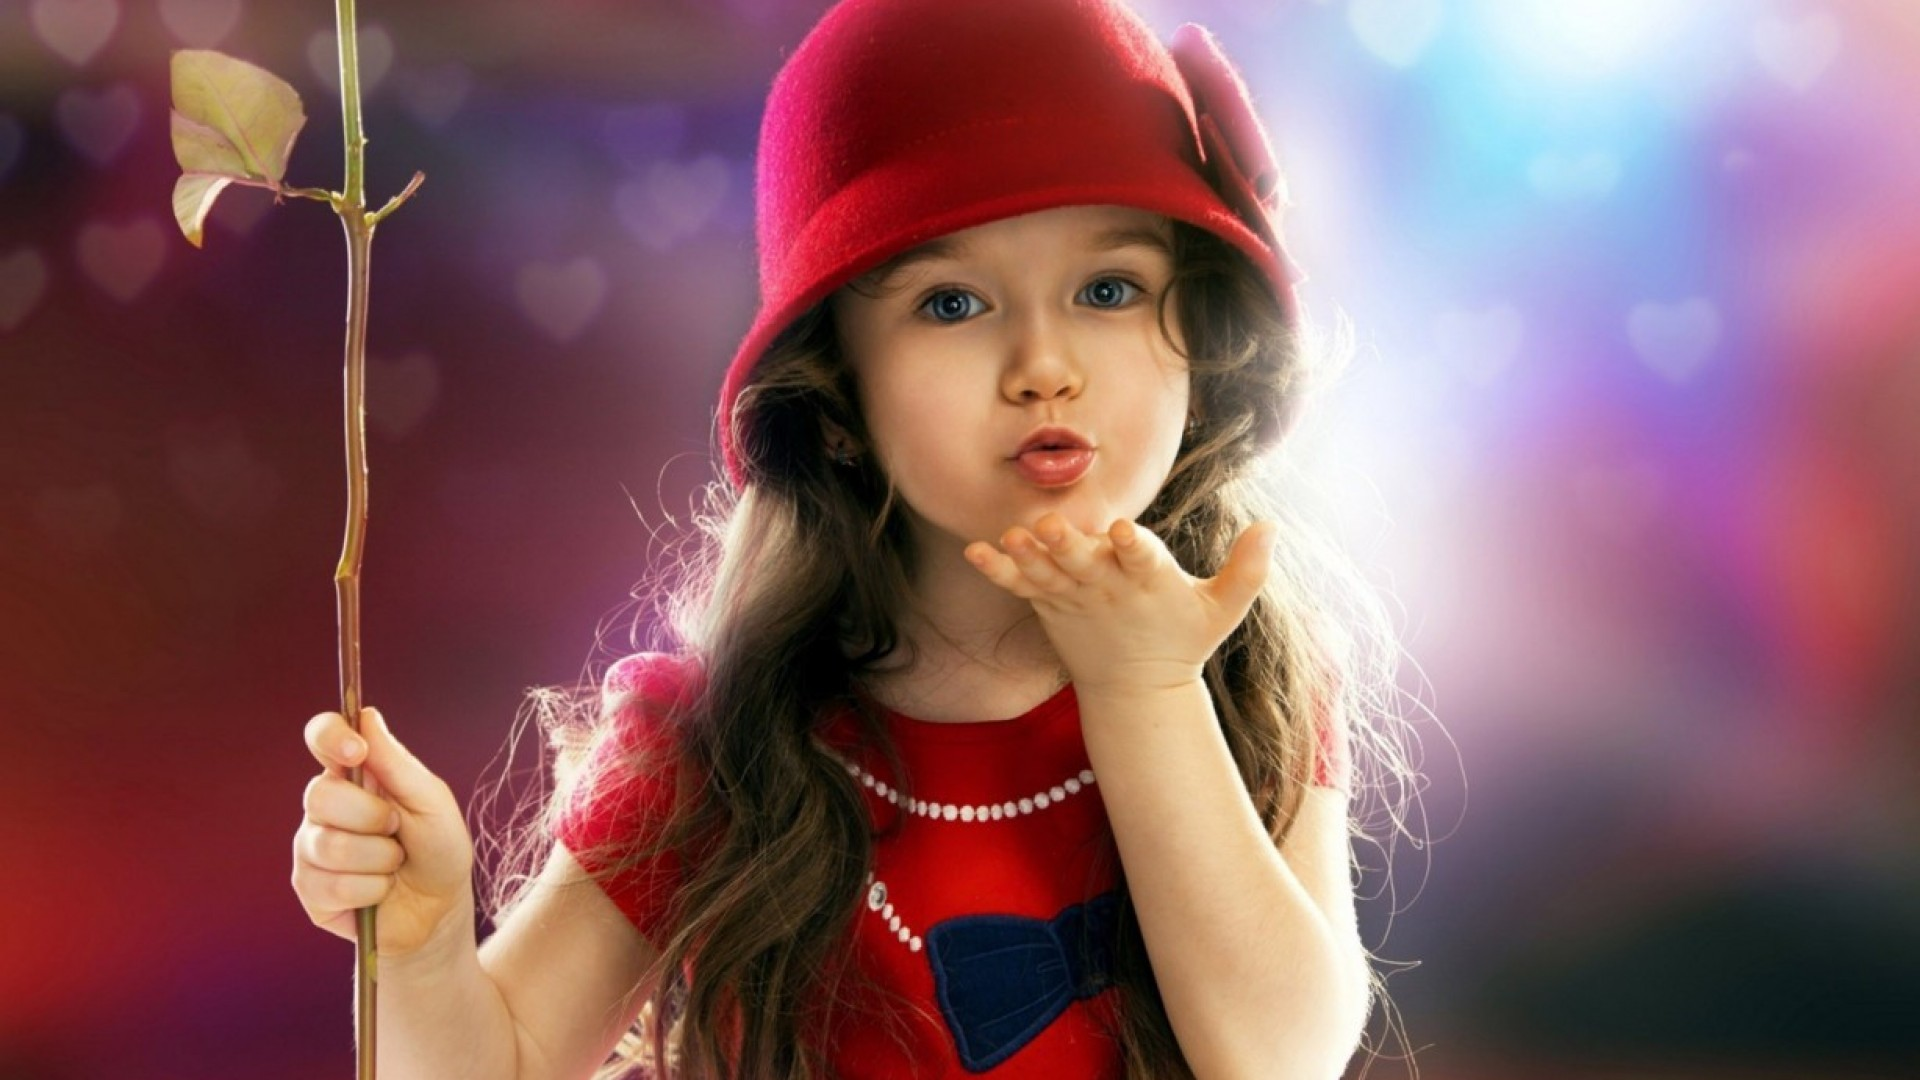 cute-baby-girl-images-and-Download-wallpaper-wp3804218